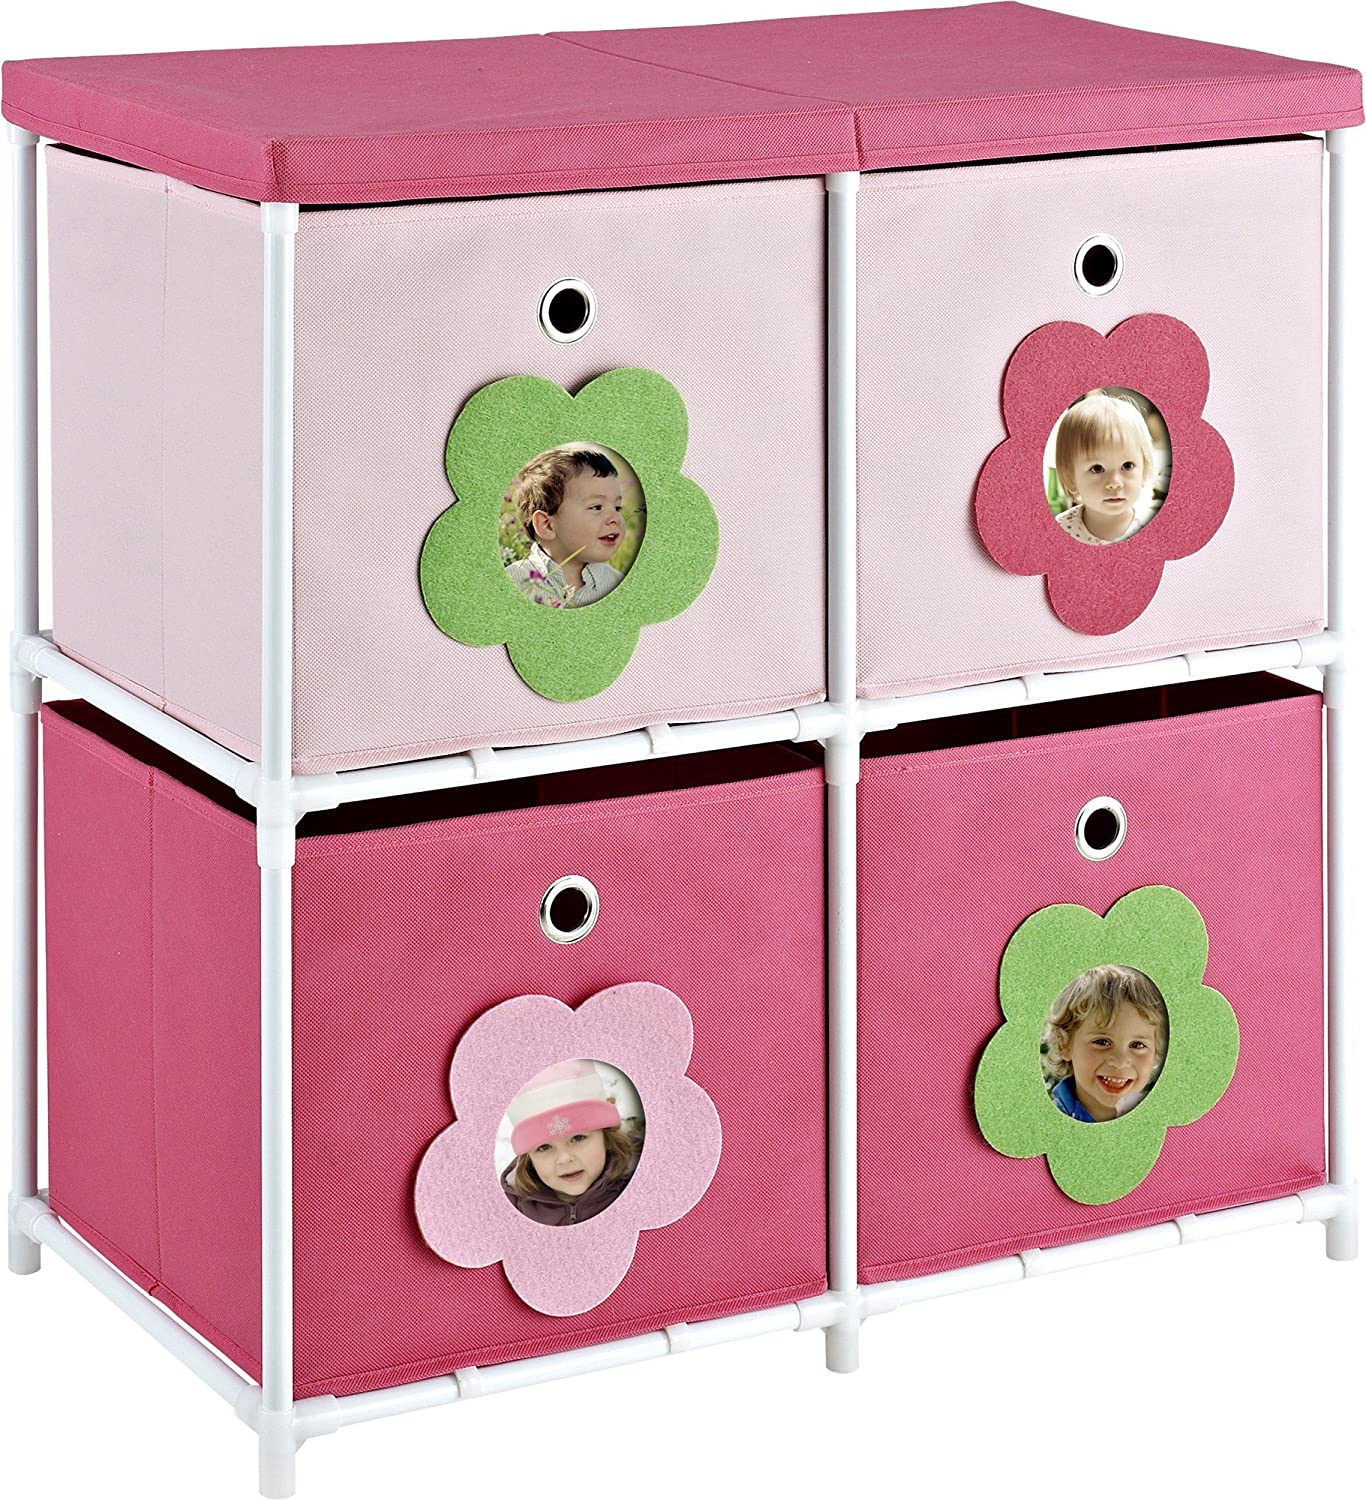 Amazon.com Cosco Blossom 4 Bin Storage Unit Pink/White Kitchen u0026 Dining  sc 1 st  Amazon.com & Amazon.com: Cosco Blossom 4 Bin Storage Unit Pink/White: Kitchen ...